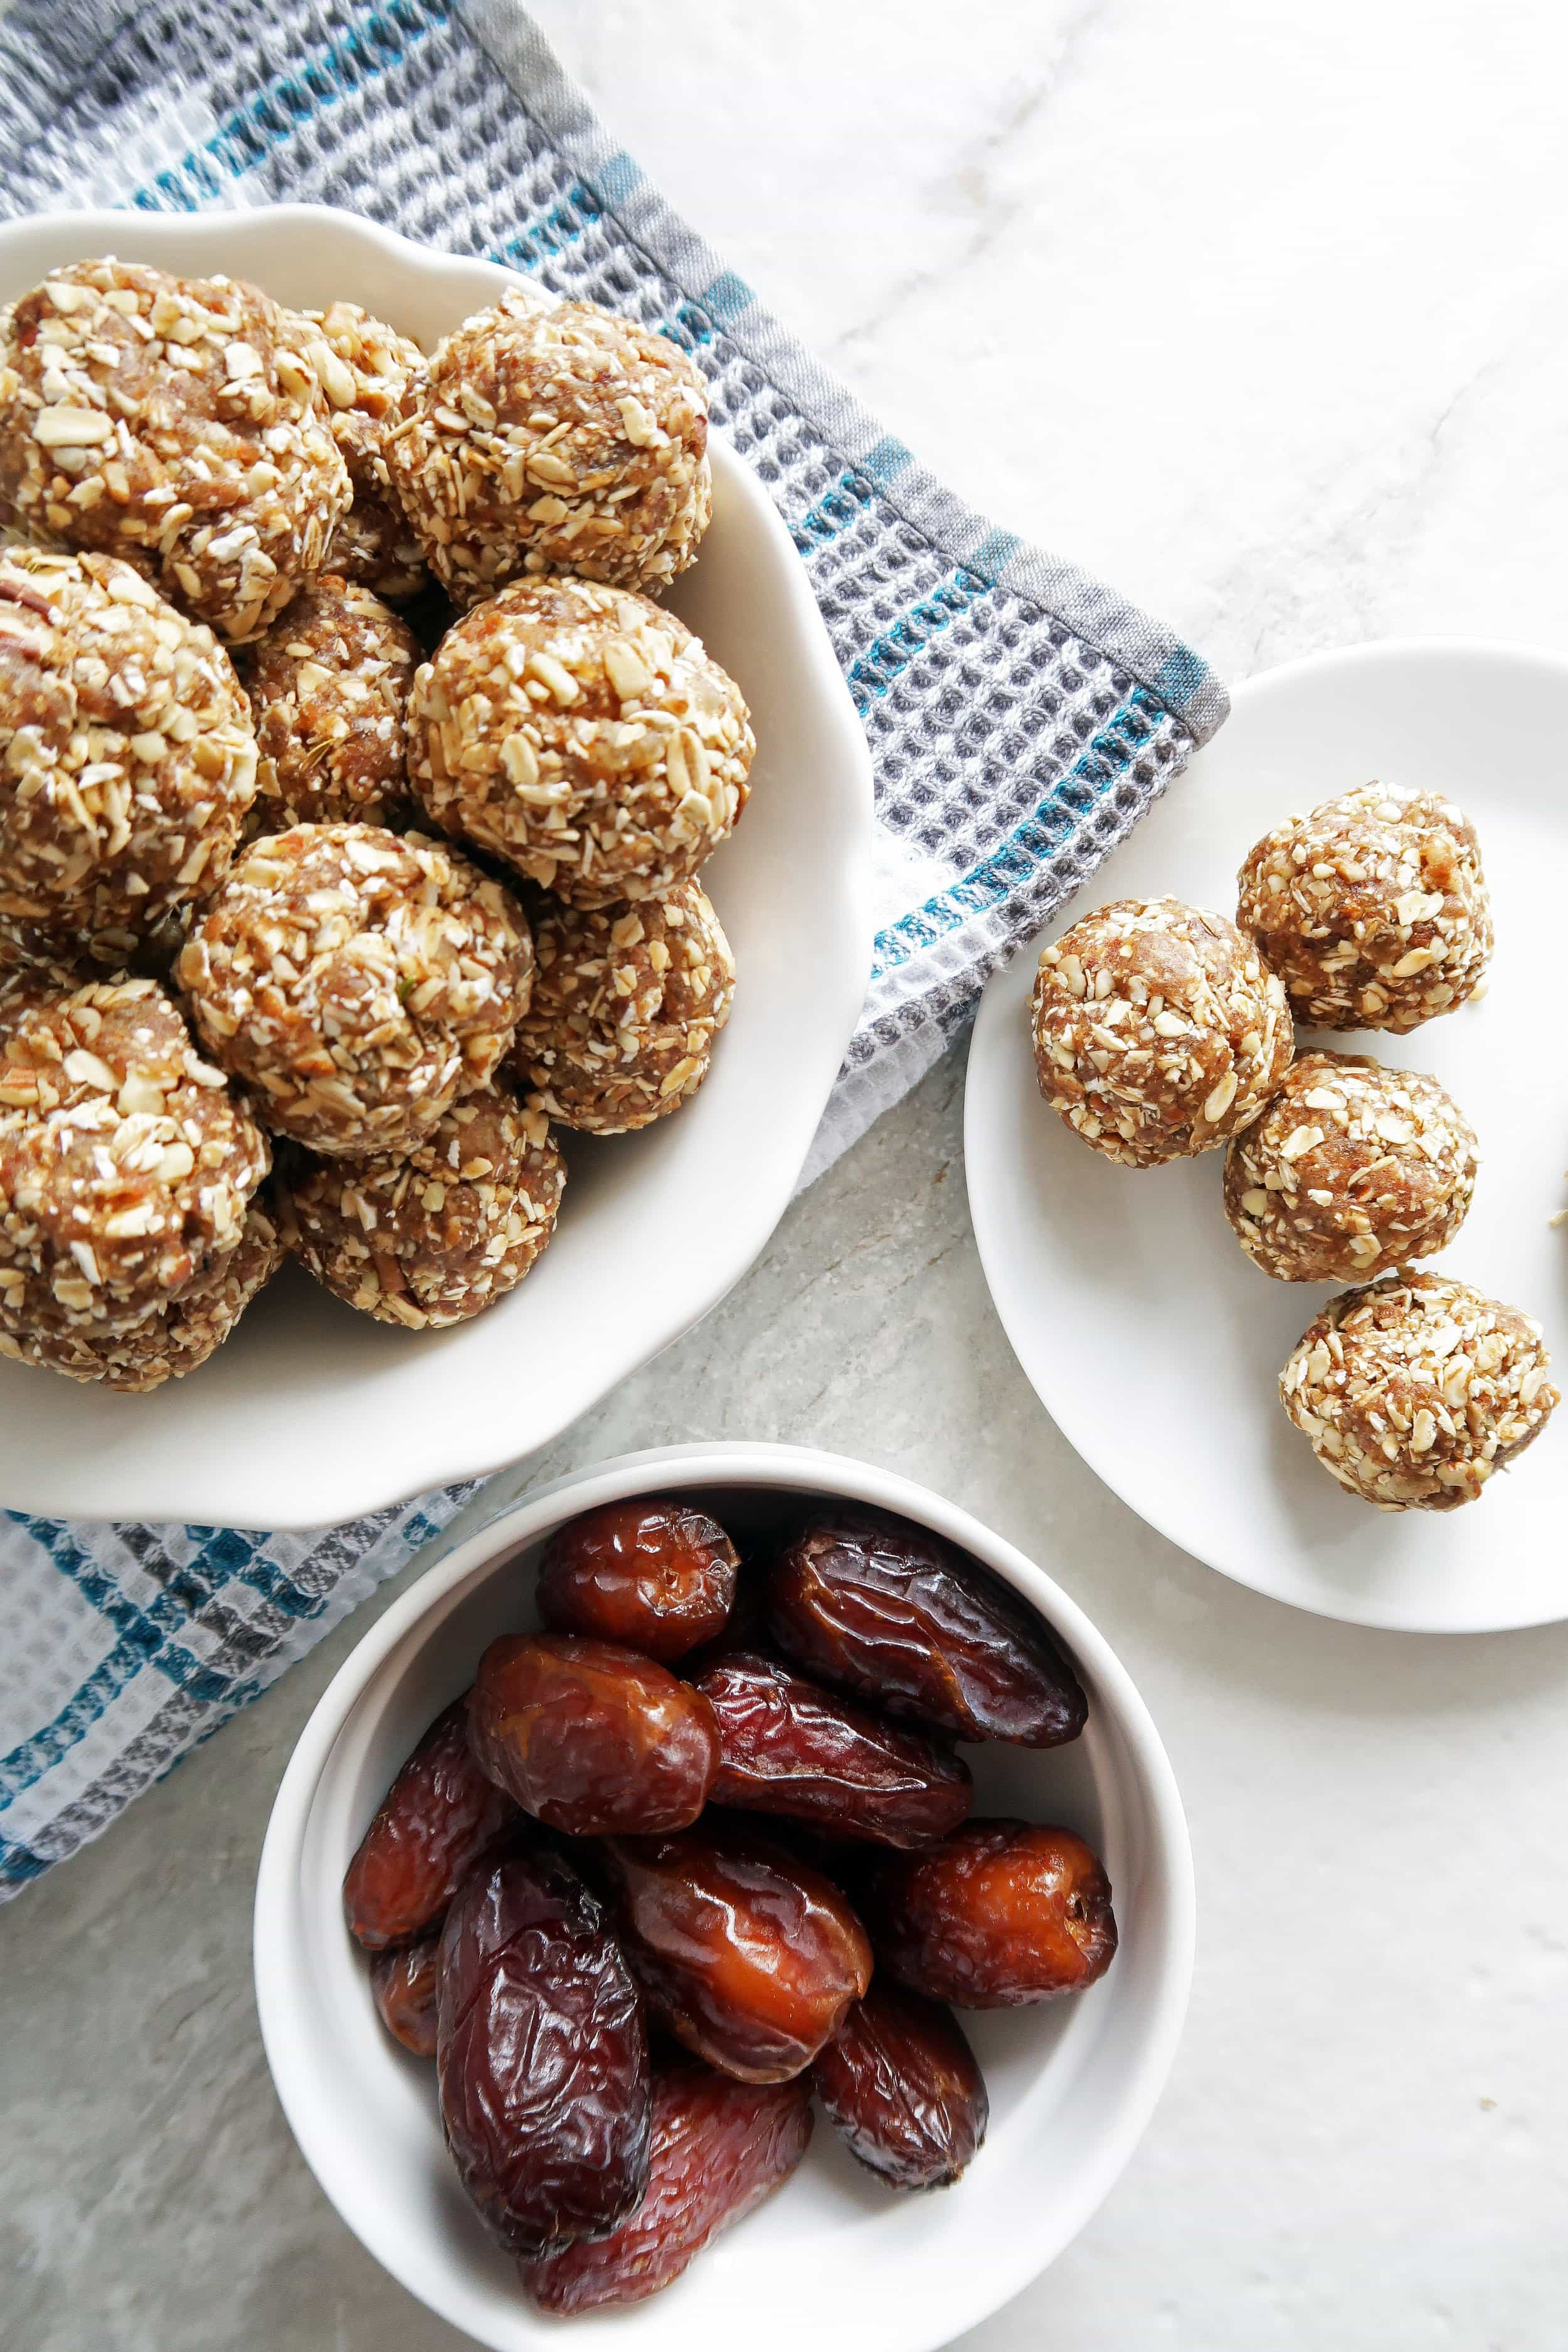 No Bake Chai Spiced Date Energy Balls pilled in a white bowl, energy balls on a white plate, and a bowl of dates to its side.